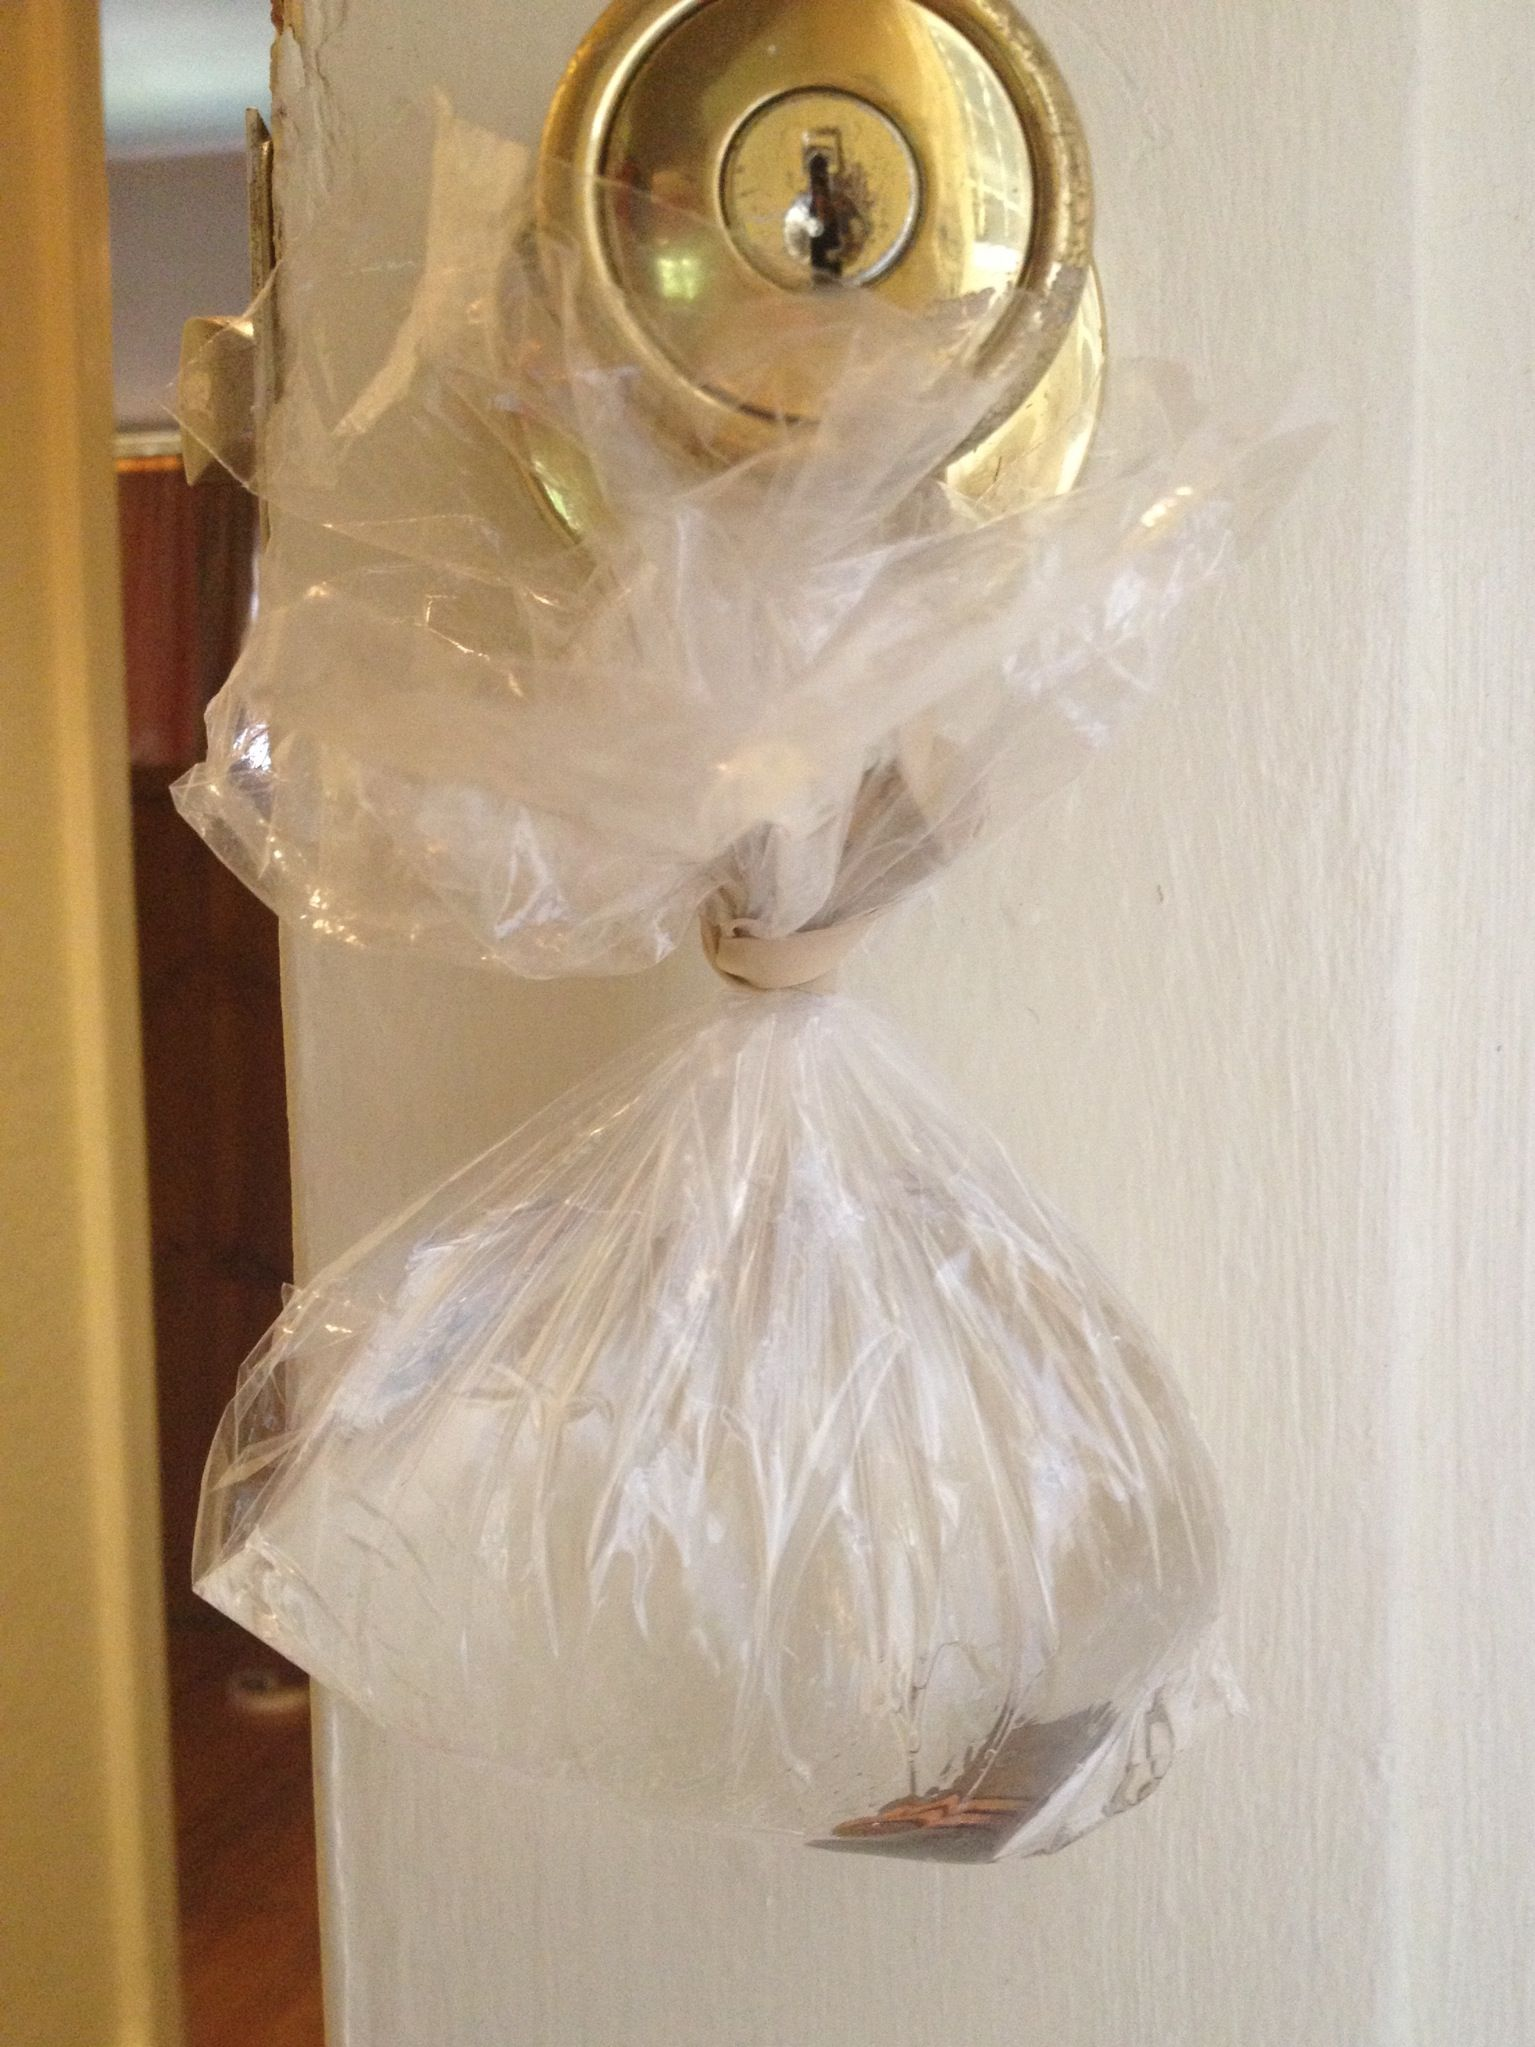 How To Keep Flies Out Of The House Put A Few Pennies In A Bag Of Water And Hang On